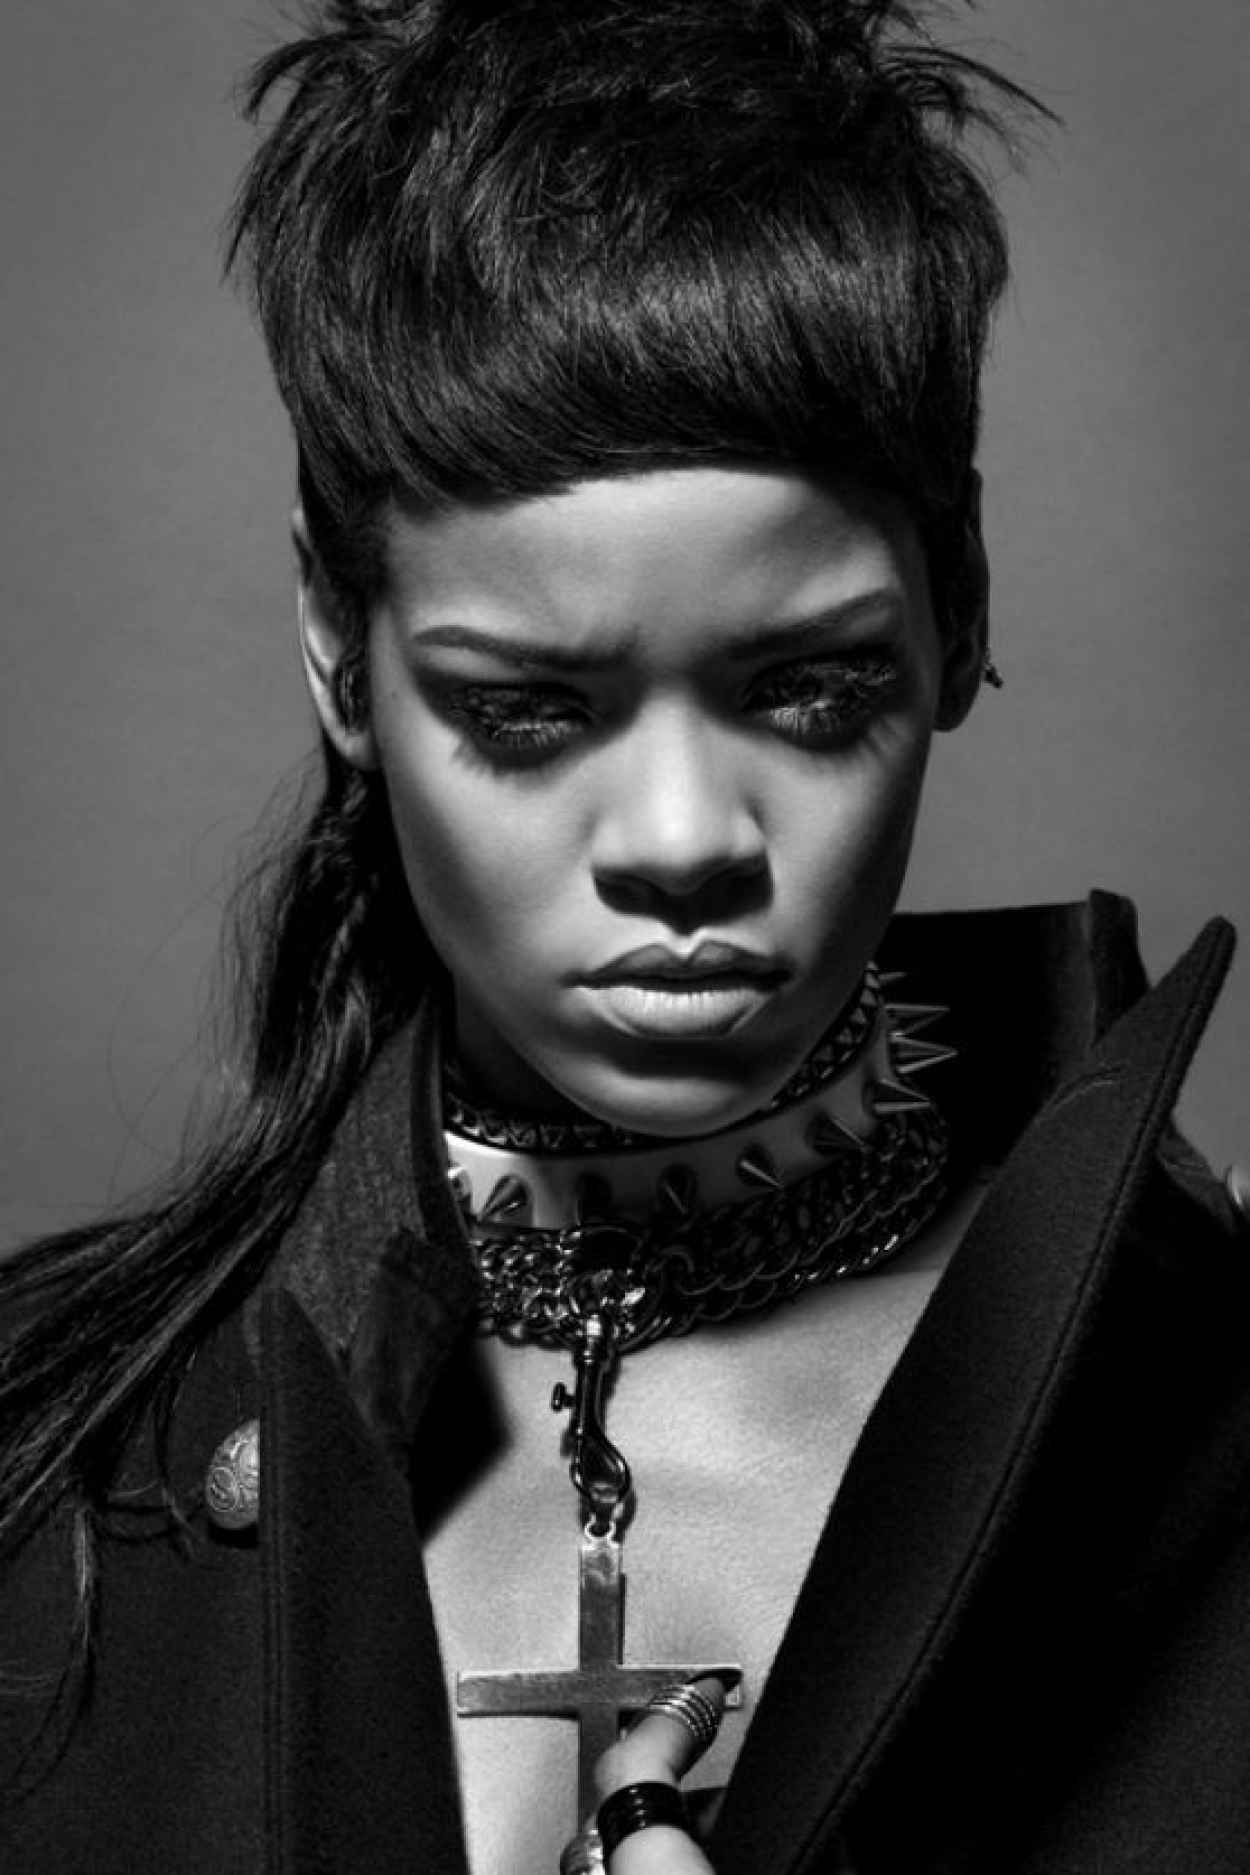 Rihanna Photoshoot for 032C Magazine Winter 2015/2014-1